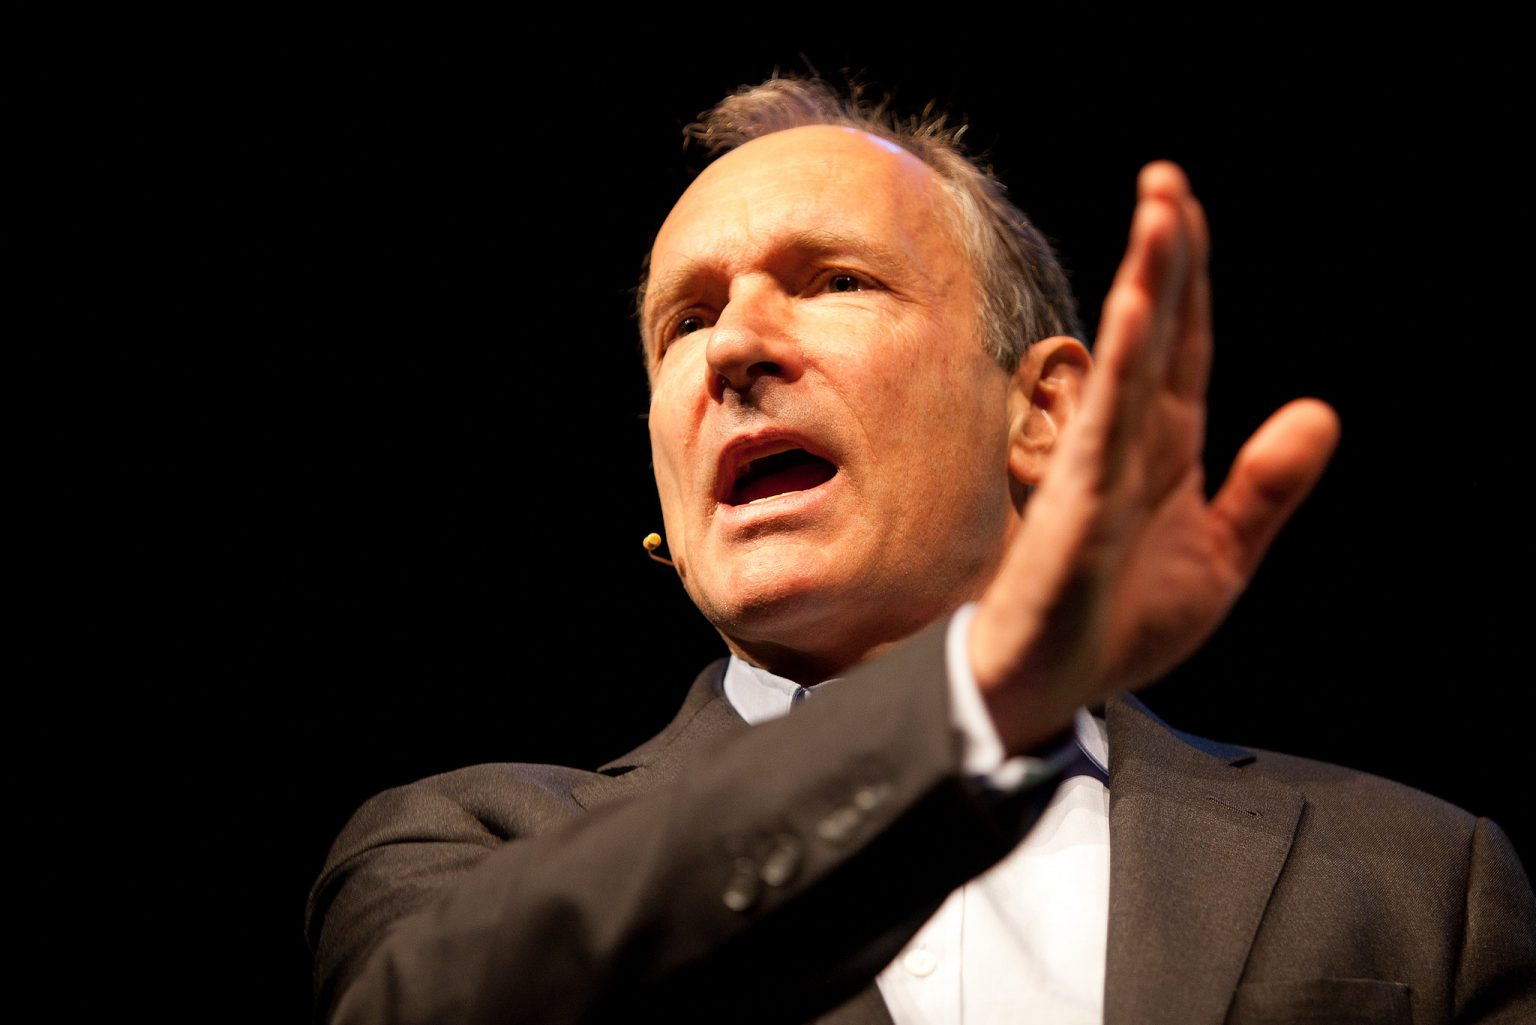 Berners-Lee is attempting to fix the web (again) with Inrupt venture